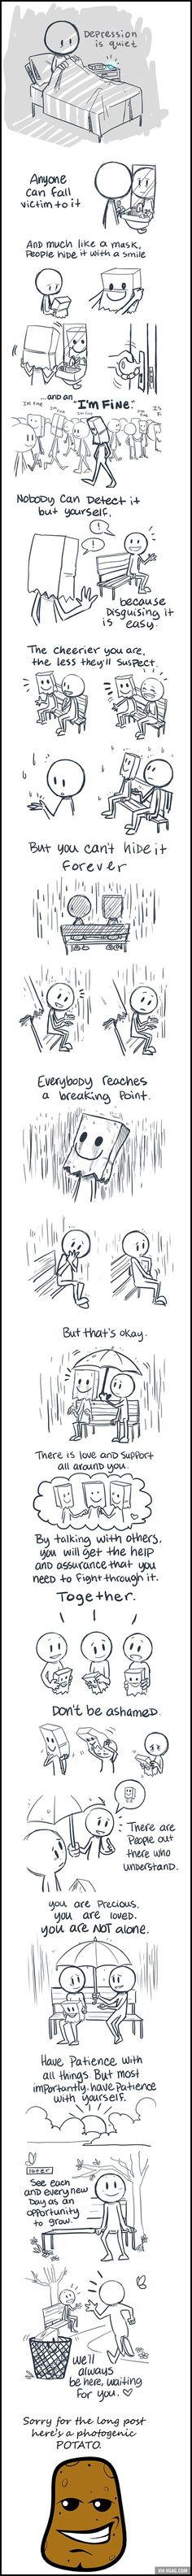 Depression Is Quiet. Anyone Can Fall Victim To It. - 9GAG